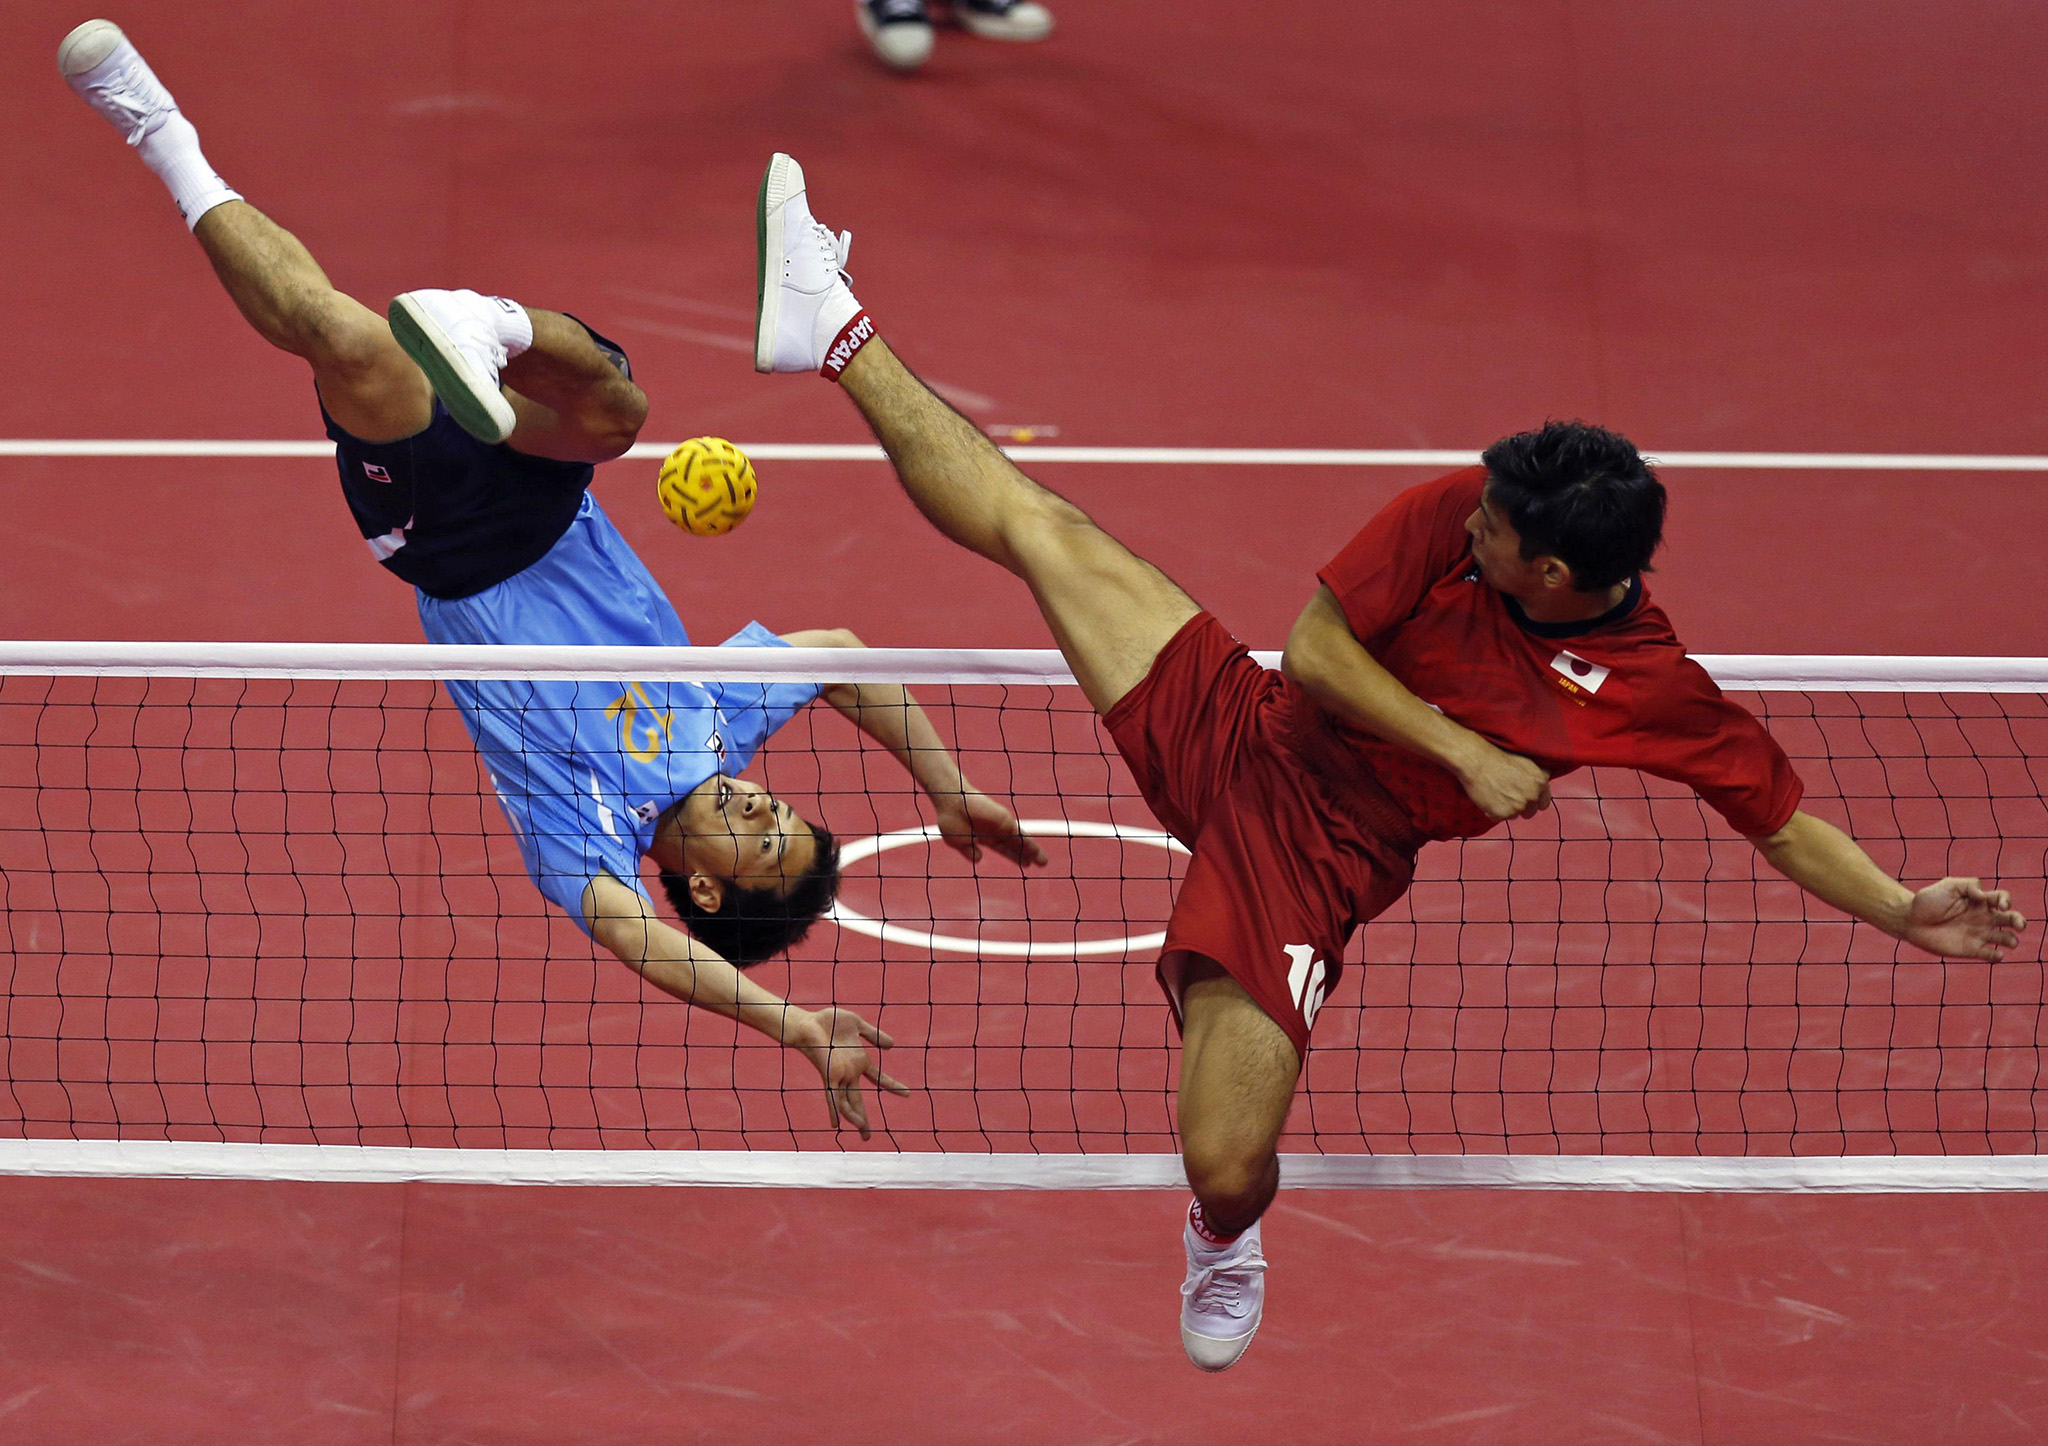 Sepak Takraw. My spellcheck hates it, but I love it.